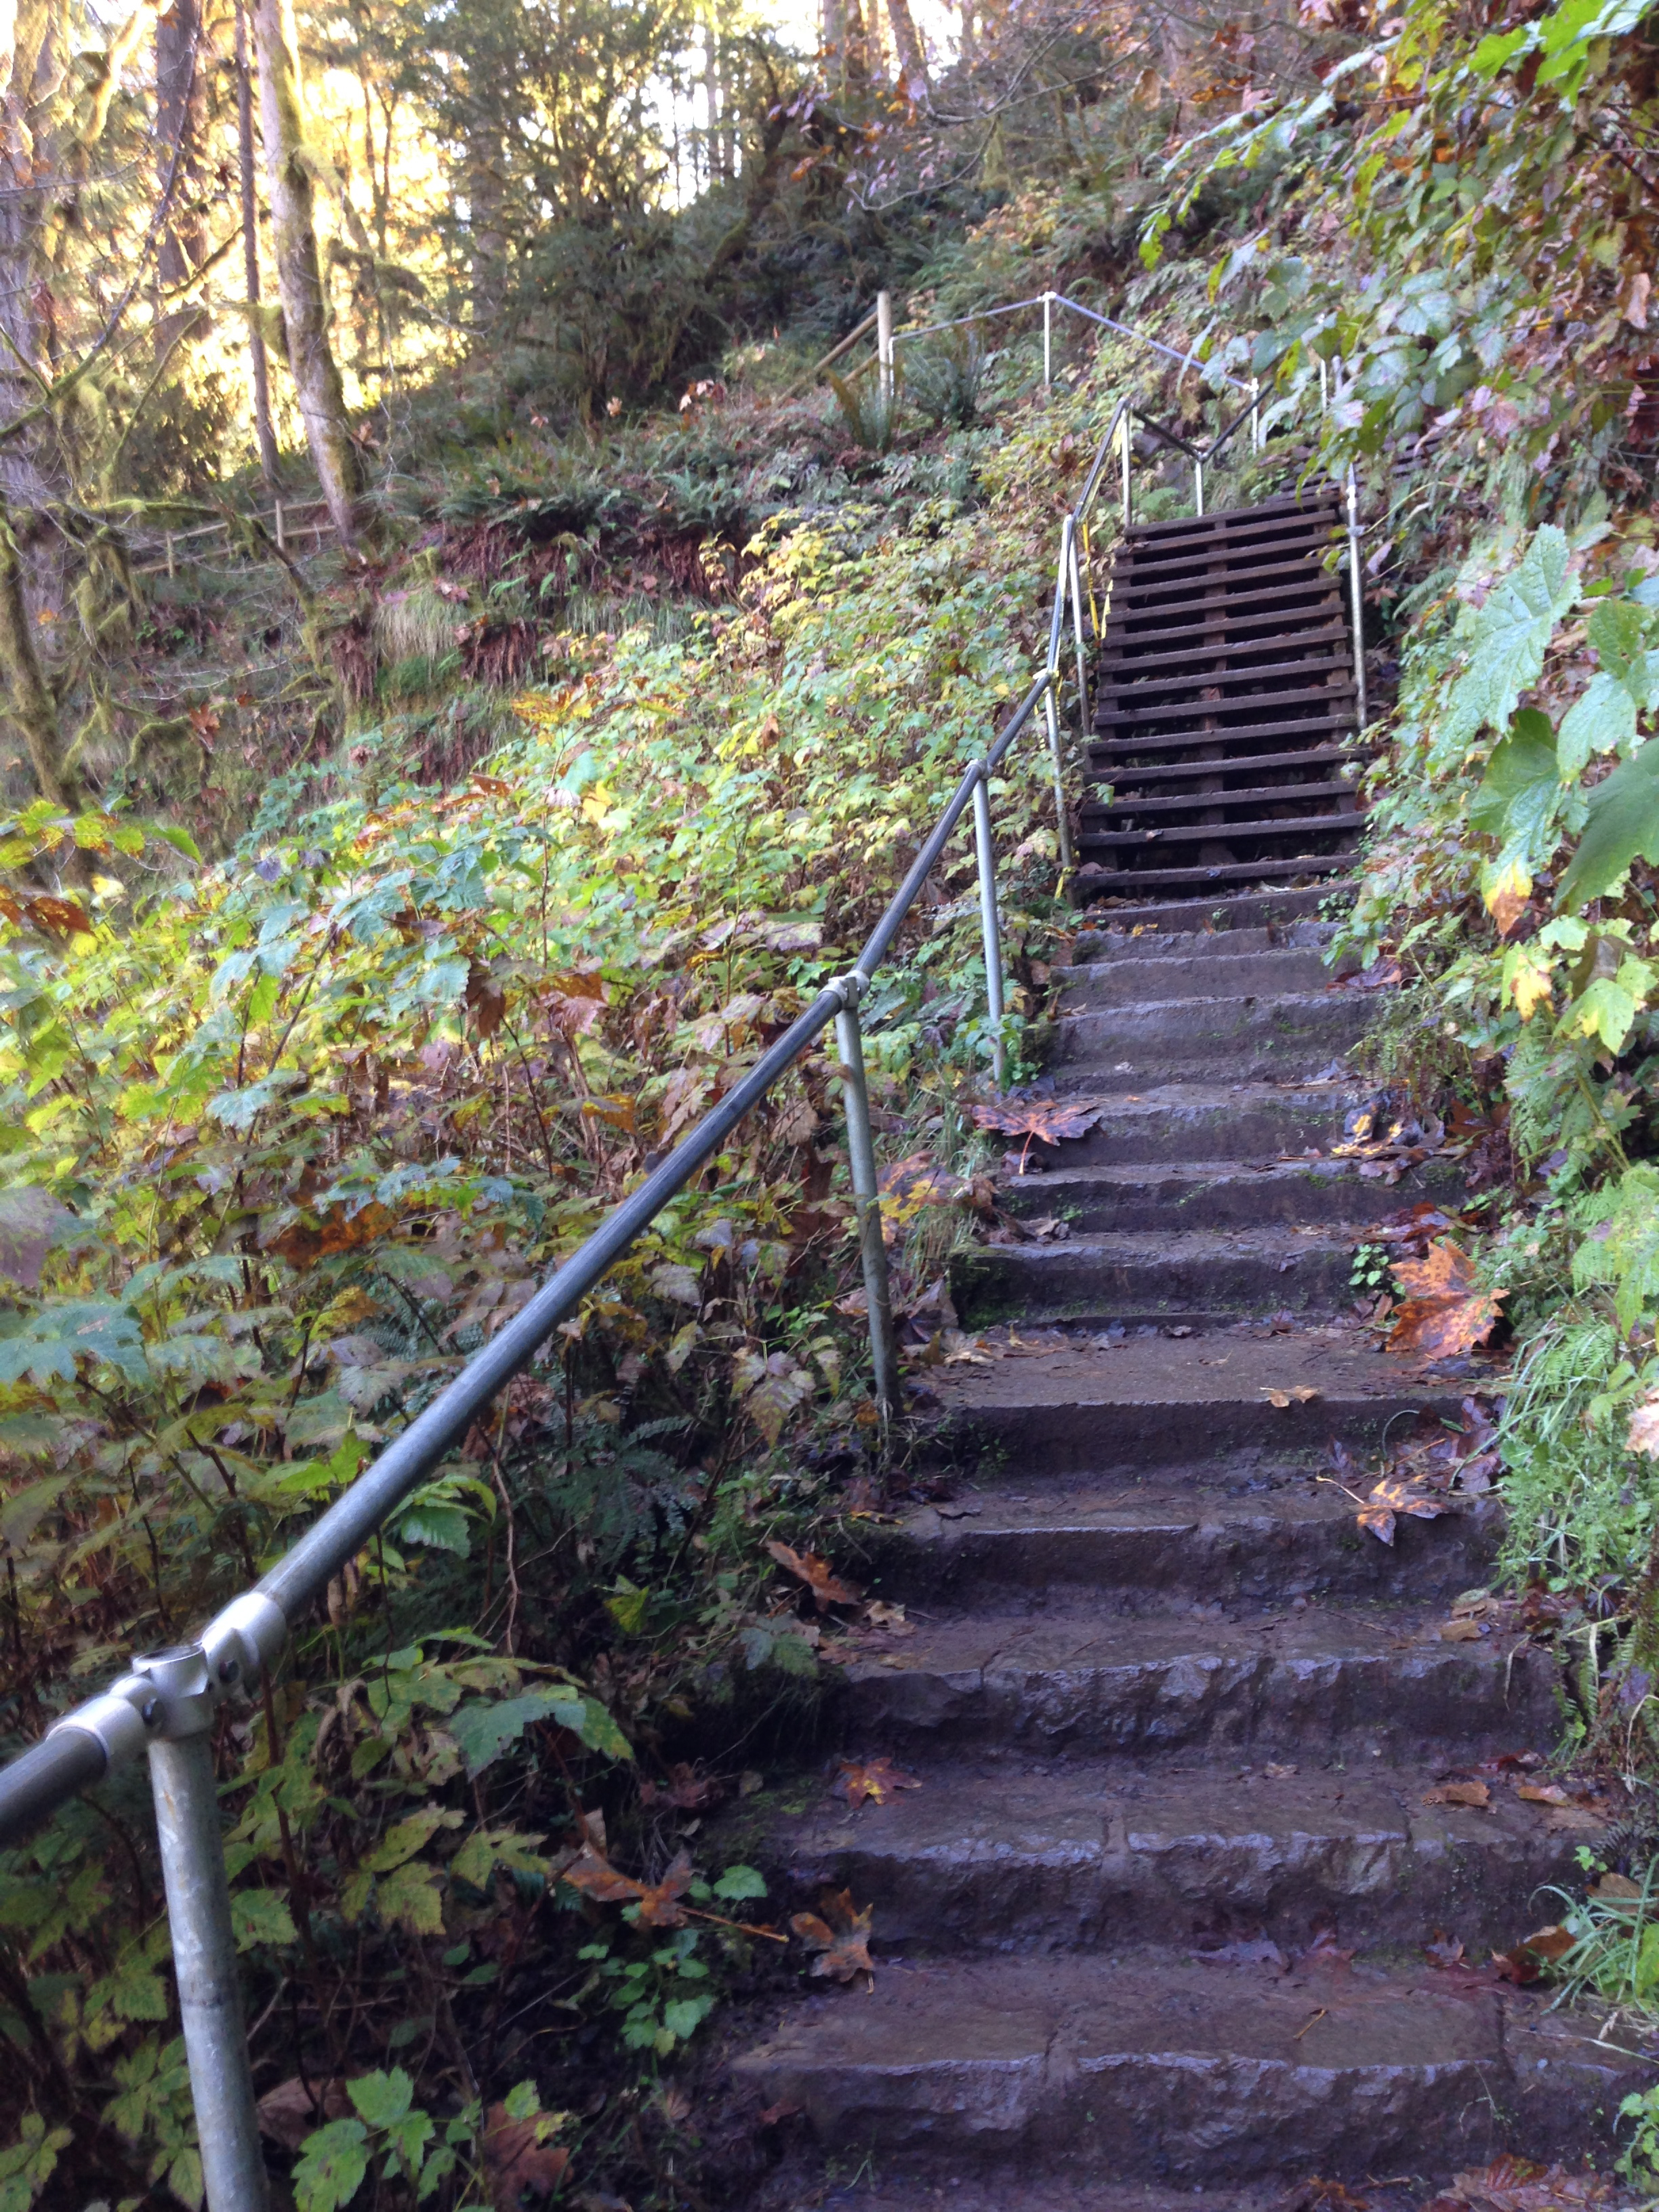 185 stone steps down to Lower South Falls